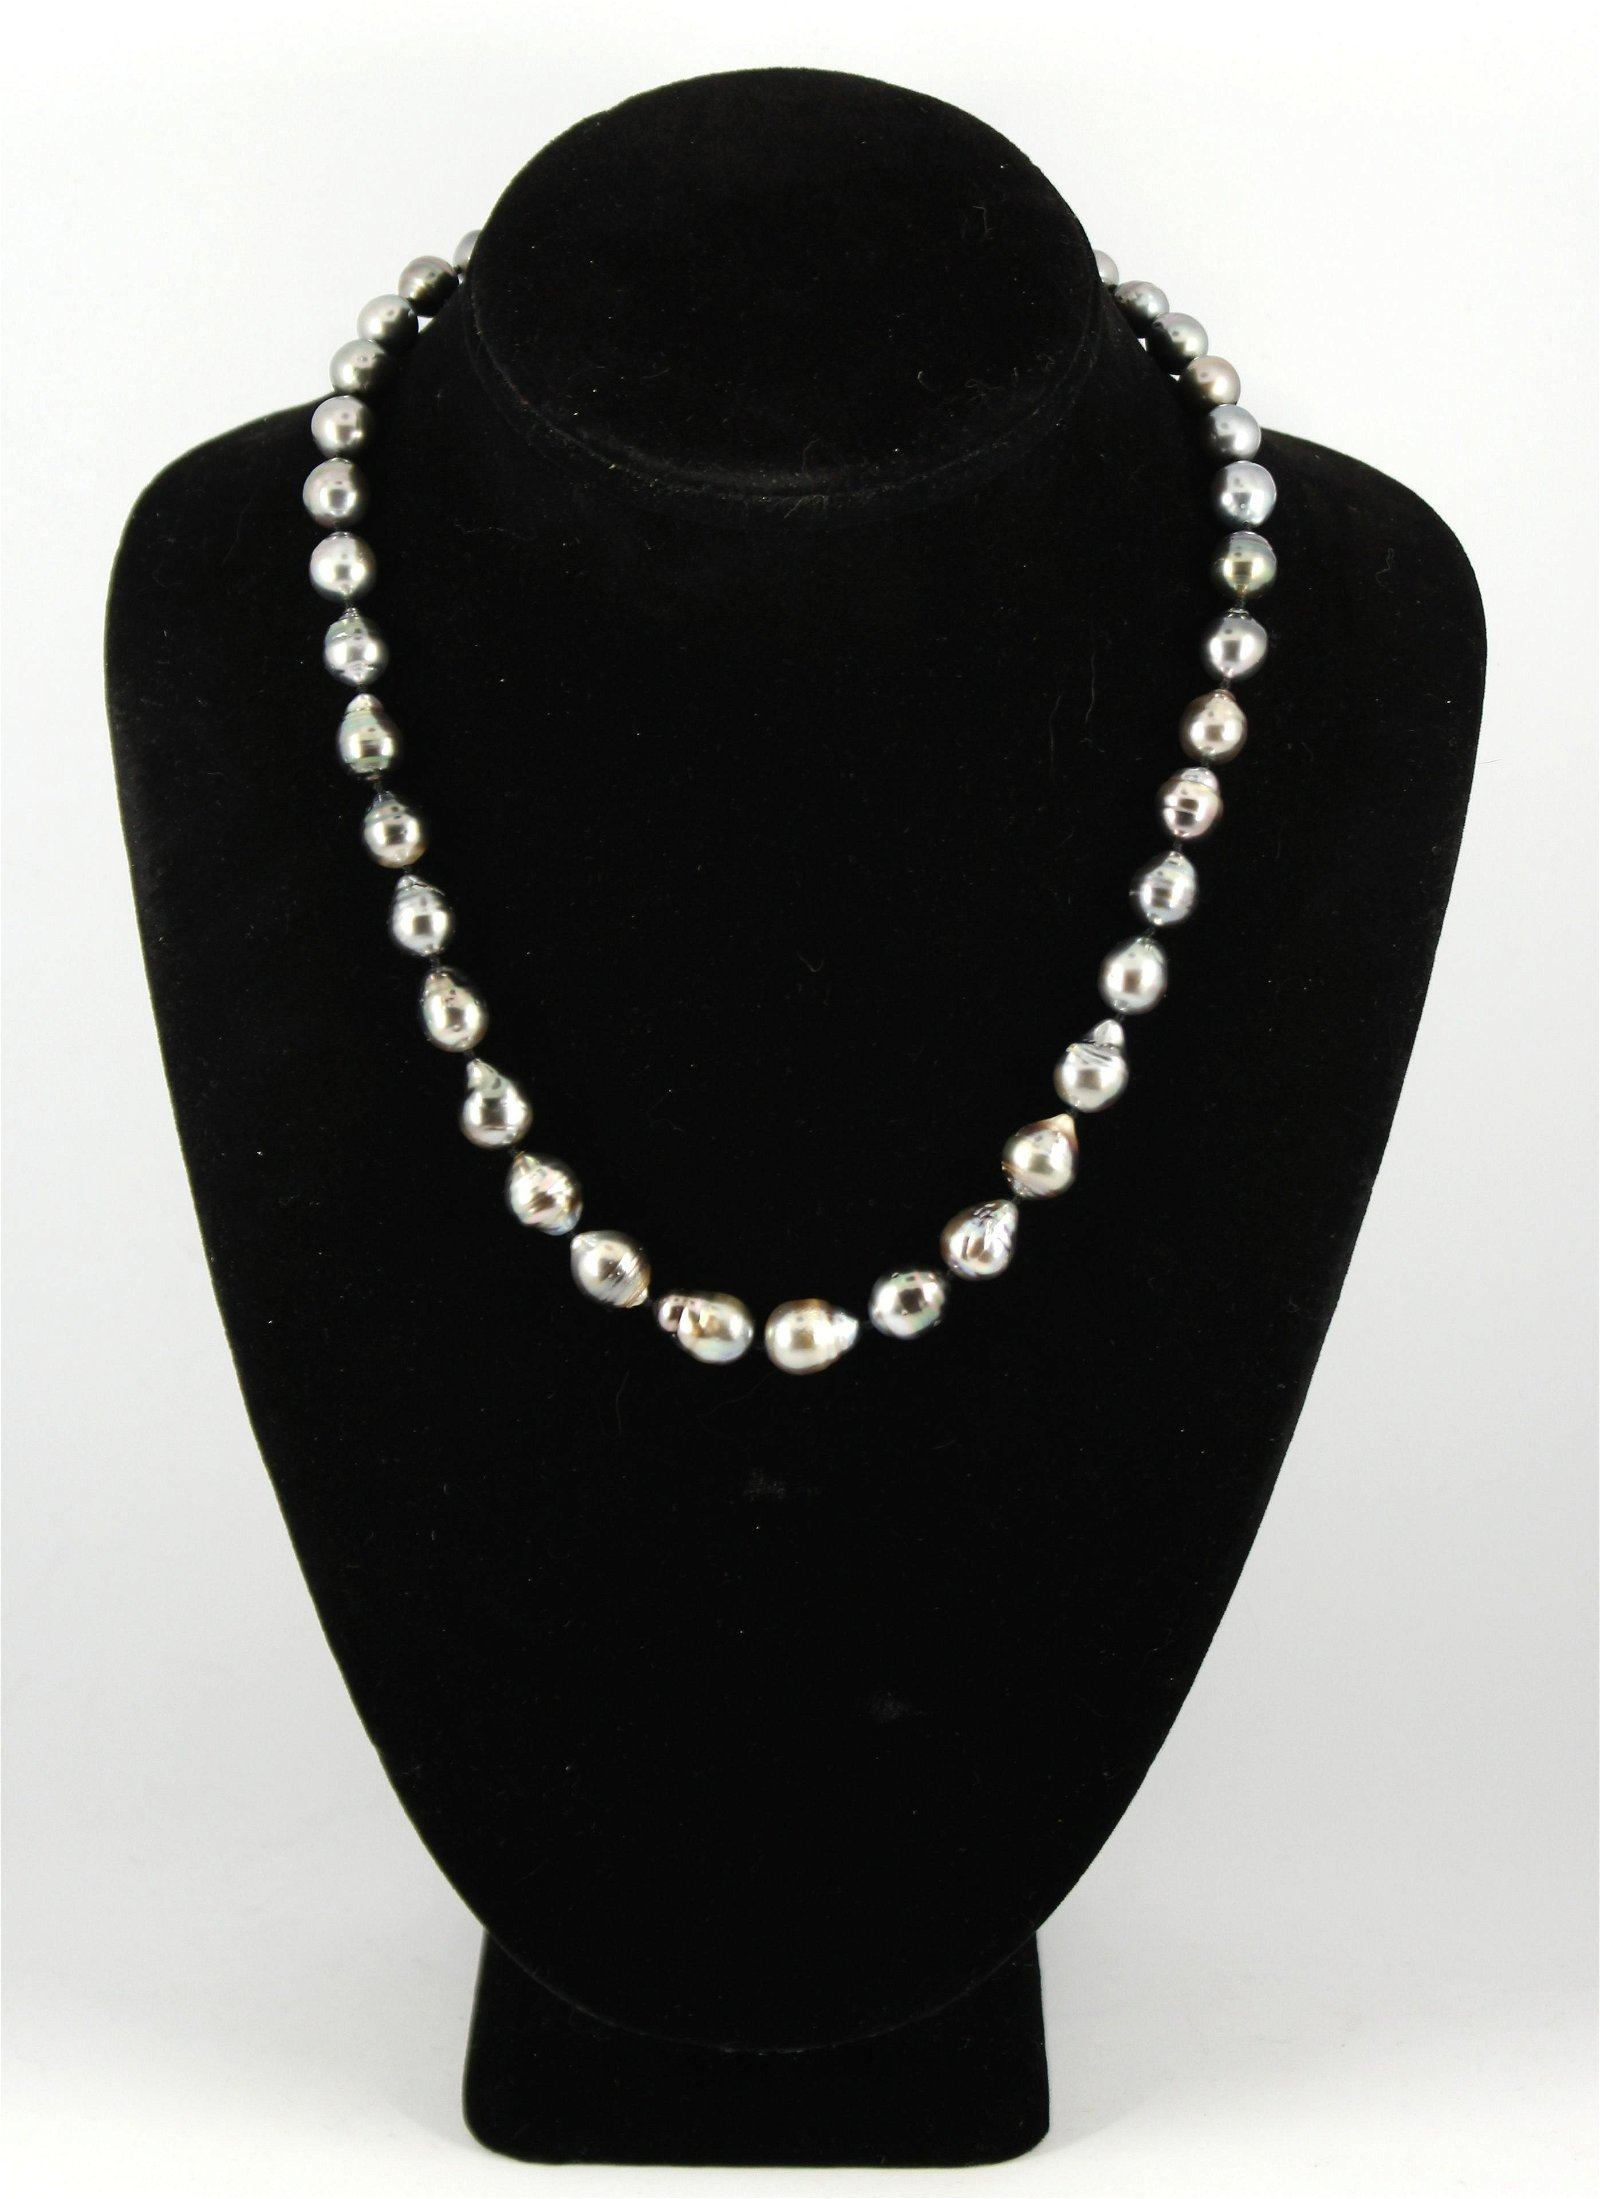 Graduated Baroque Pearl Necklace with 14K YG Clasp